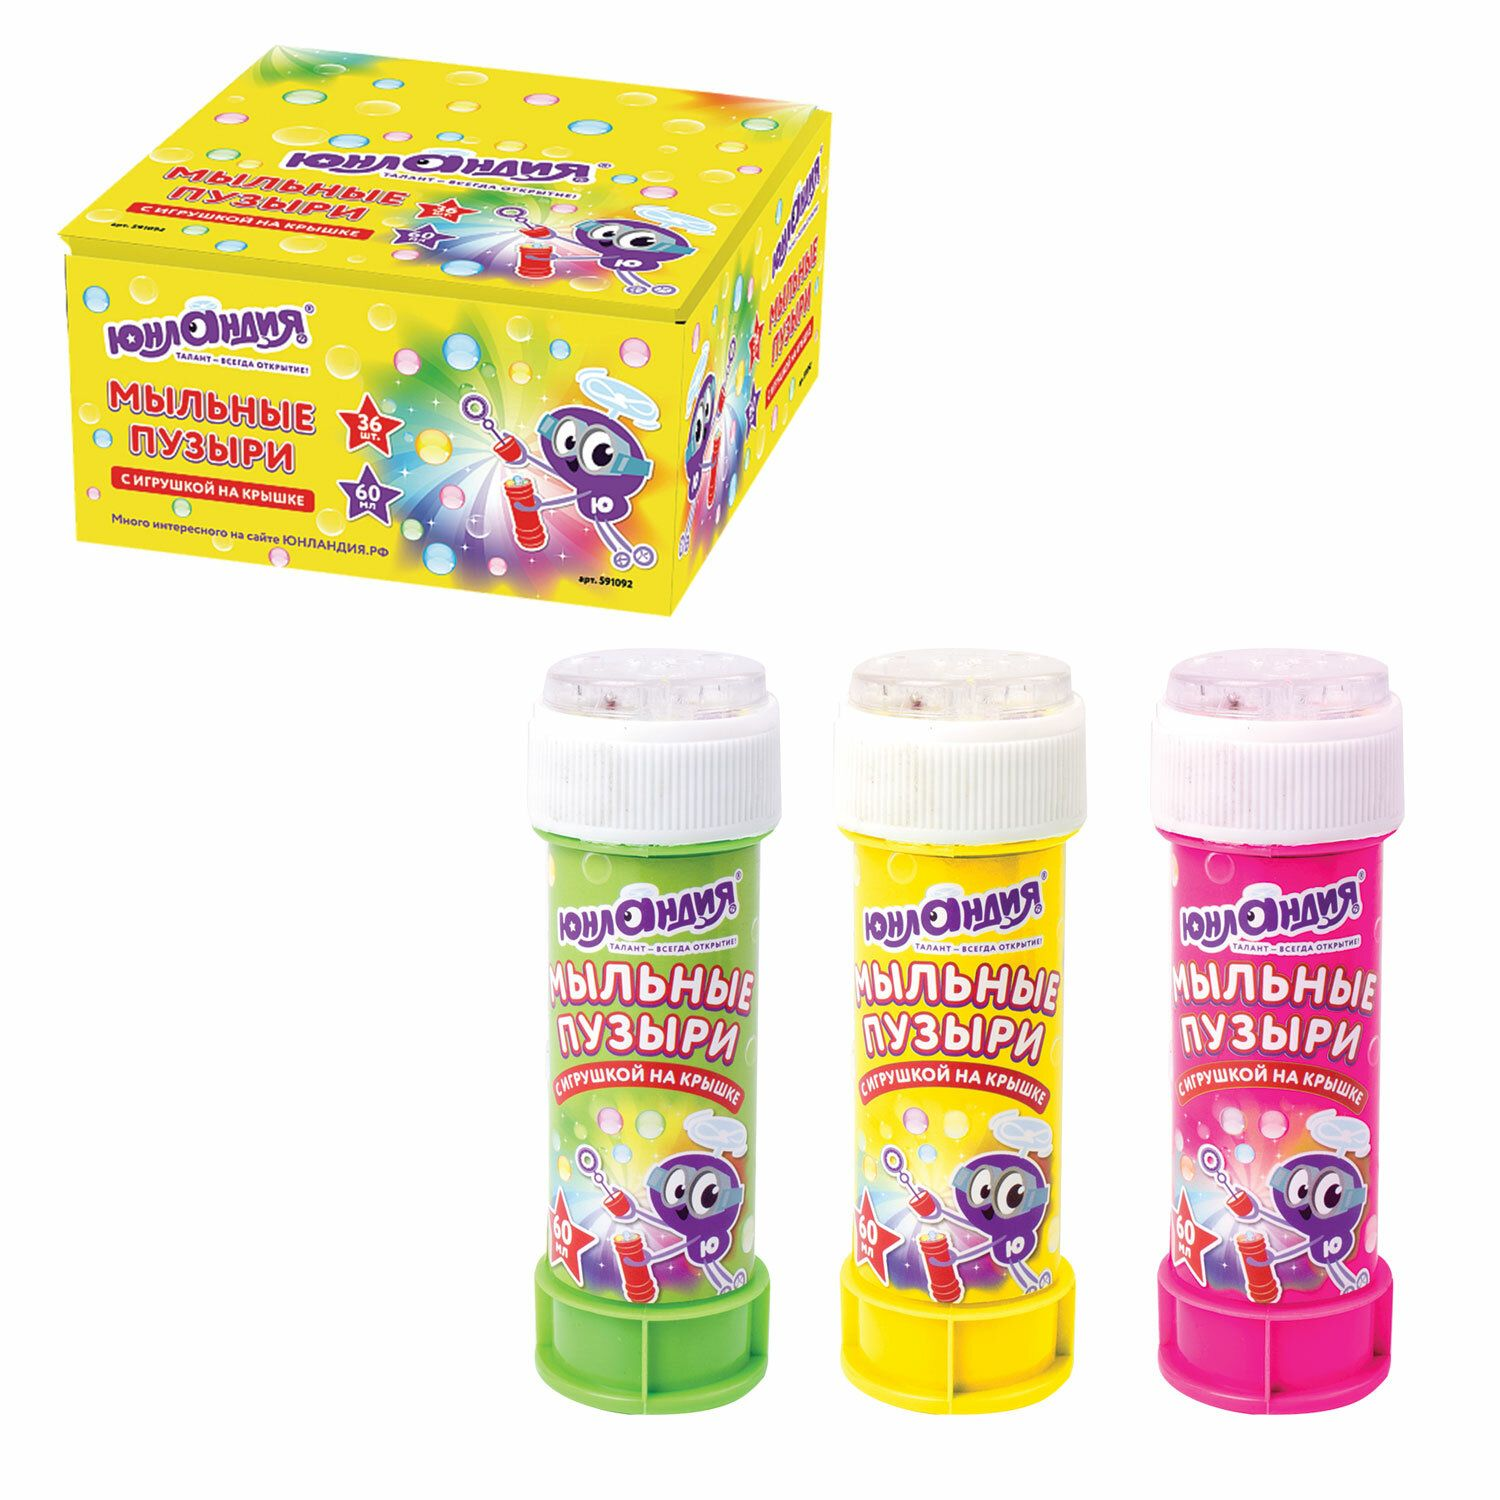 UNLANDIA 60 ml soap bubbles, with toy on lid